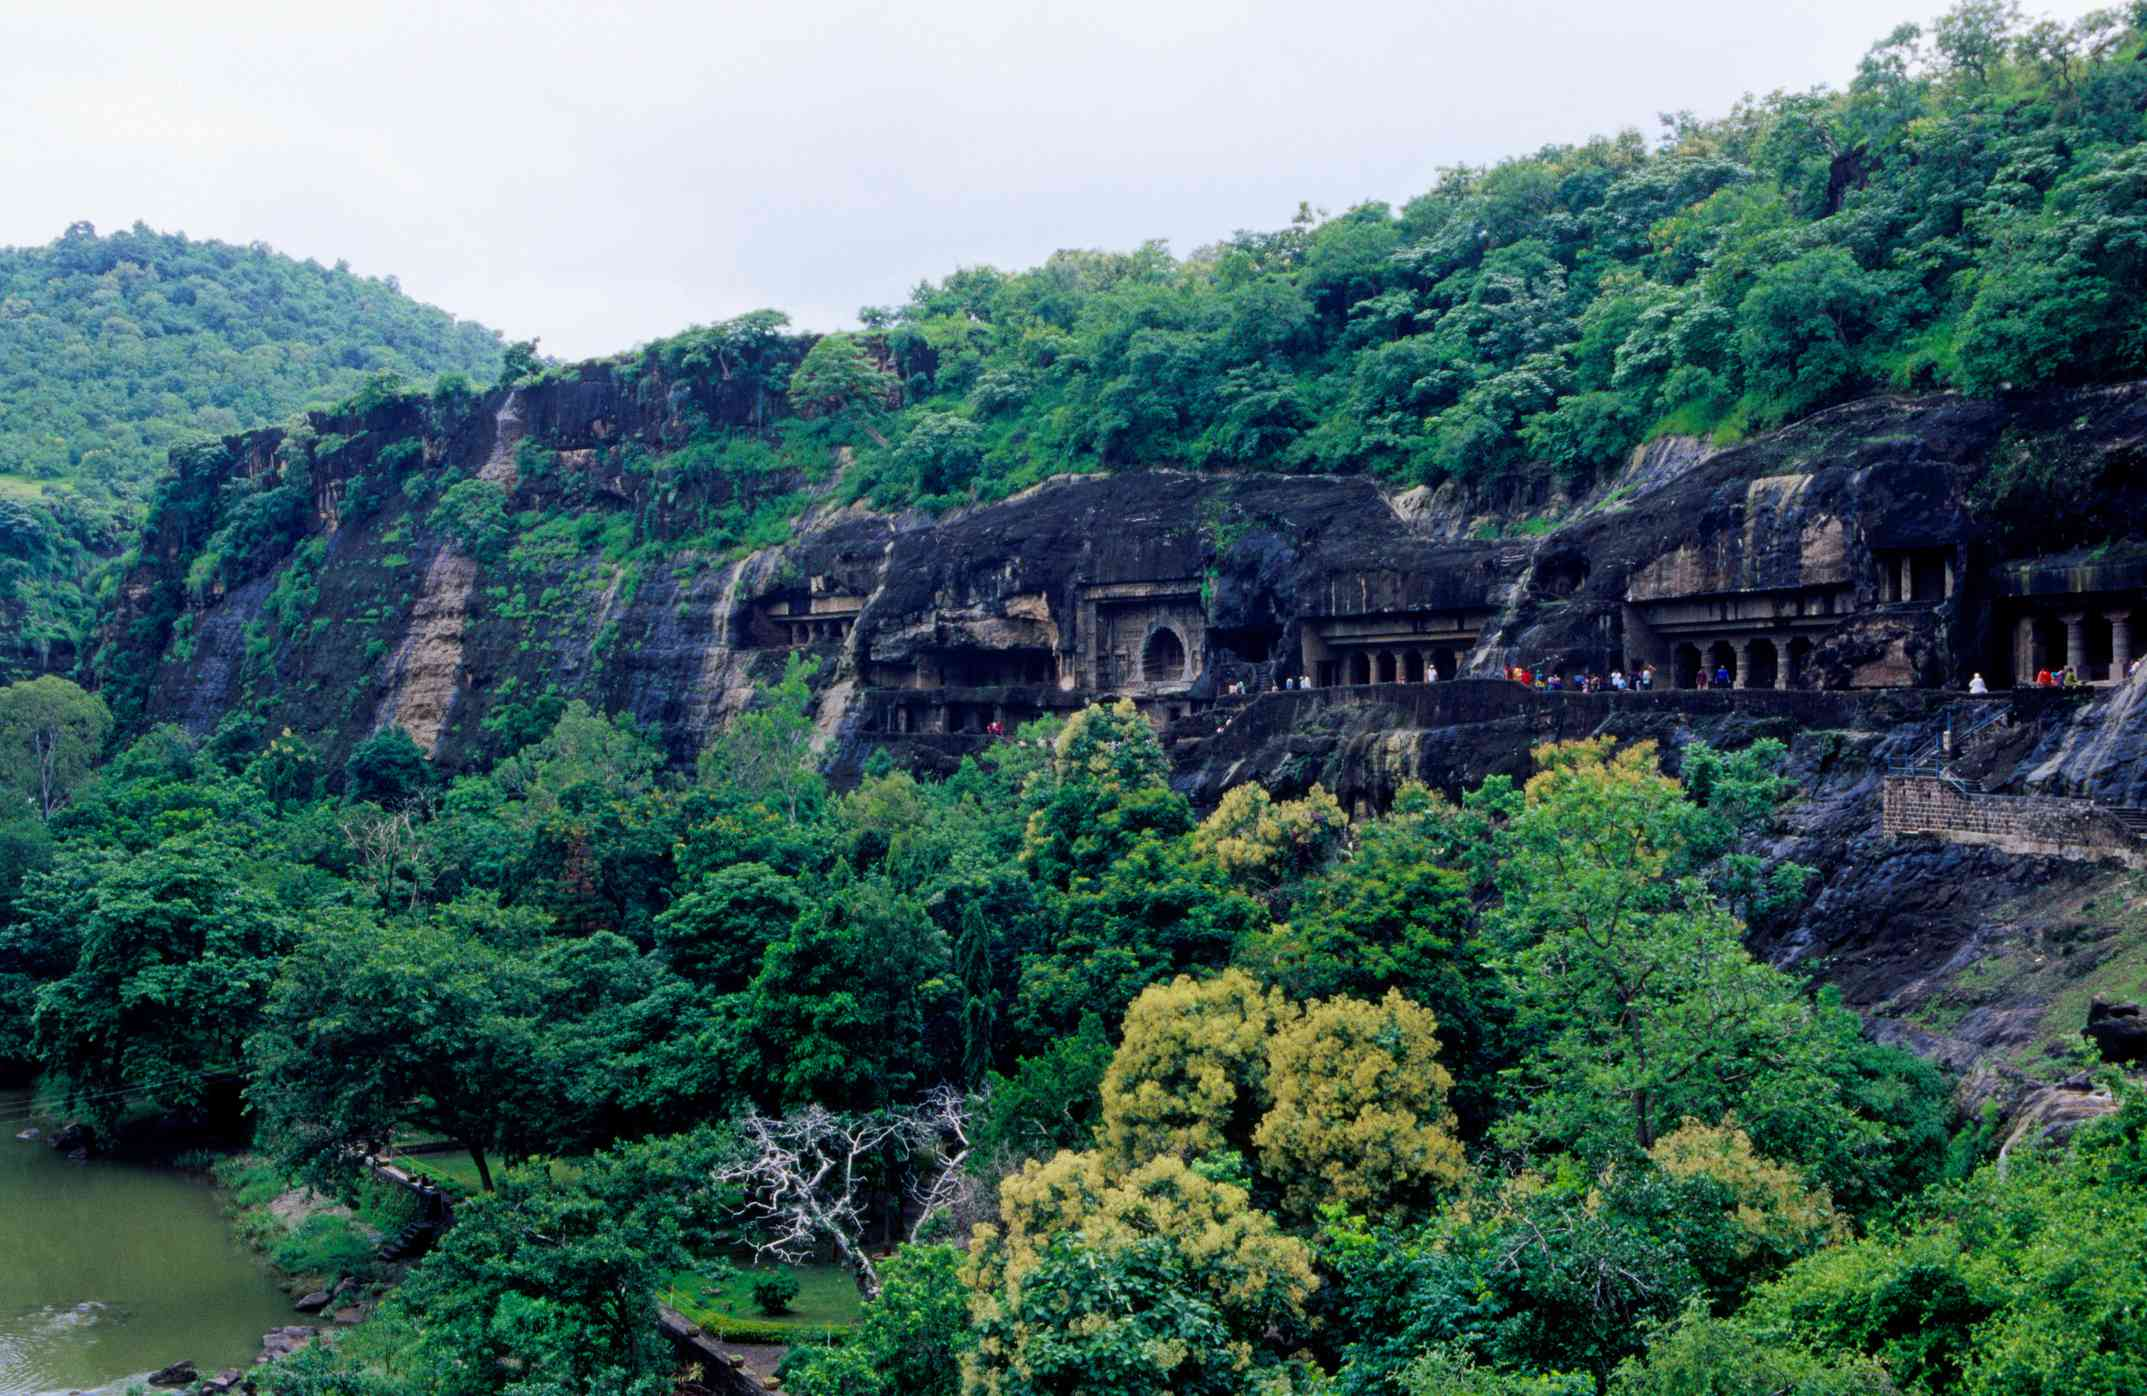 Ajanta caves surrounded by rich, green trees and foliage